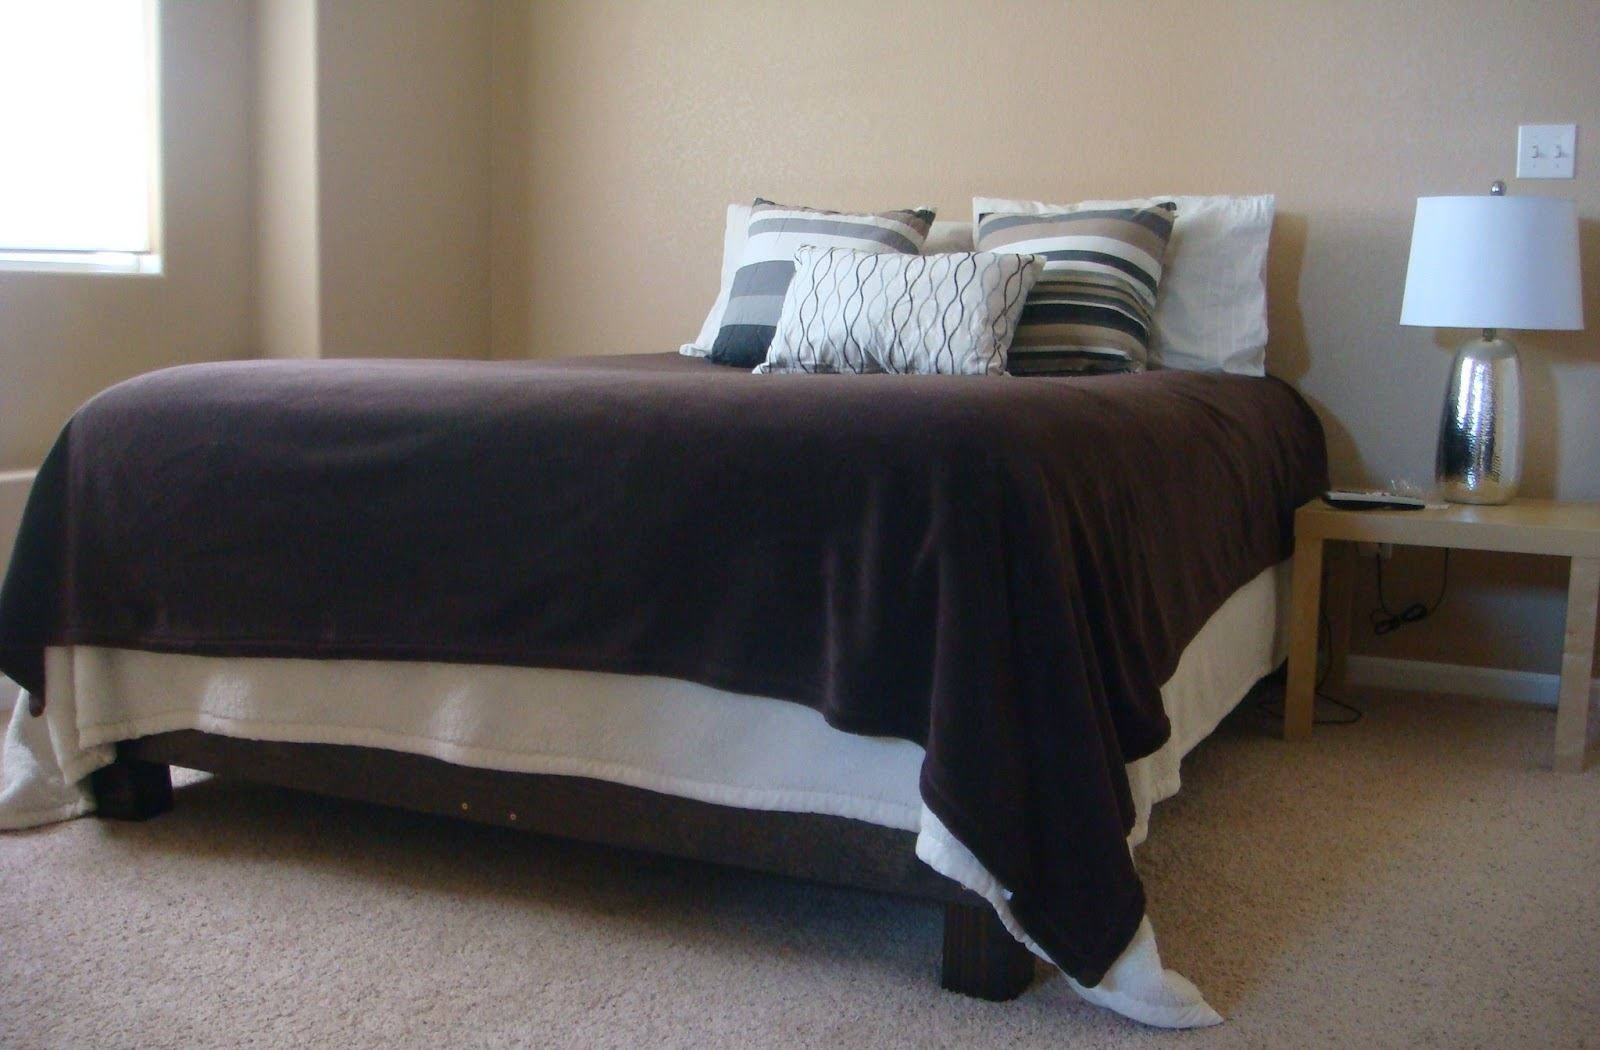 Weve Always Had A Plain Boring Metal Bed Frame In Our Room But Wanted Something Little Nicer I Found Great On Ana Whites Blog That